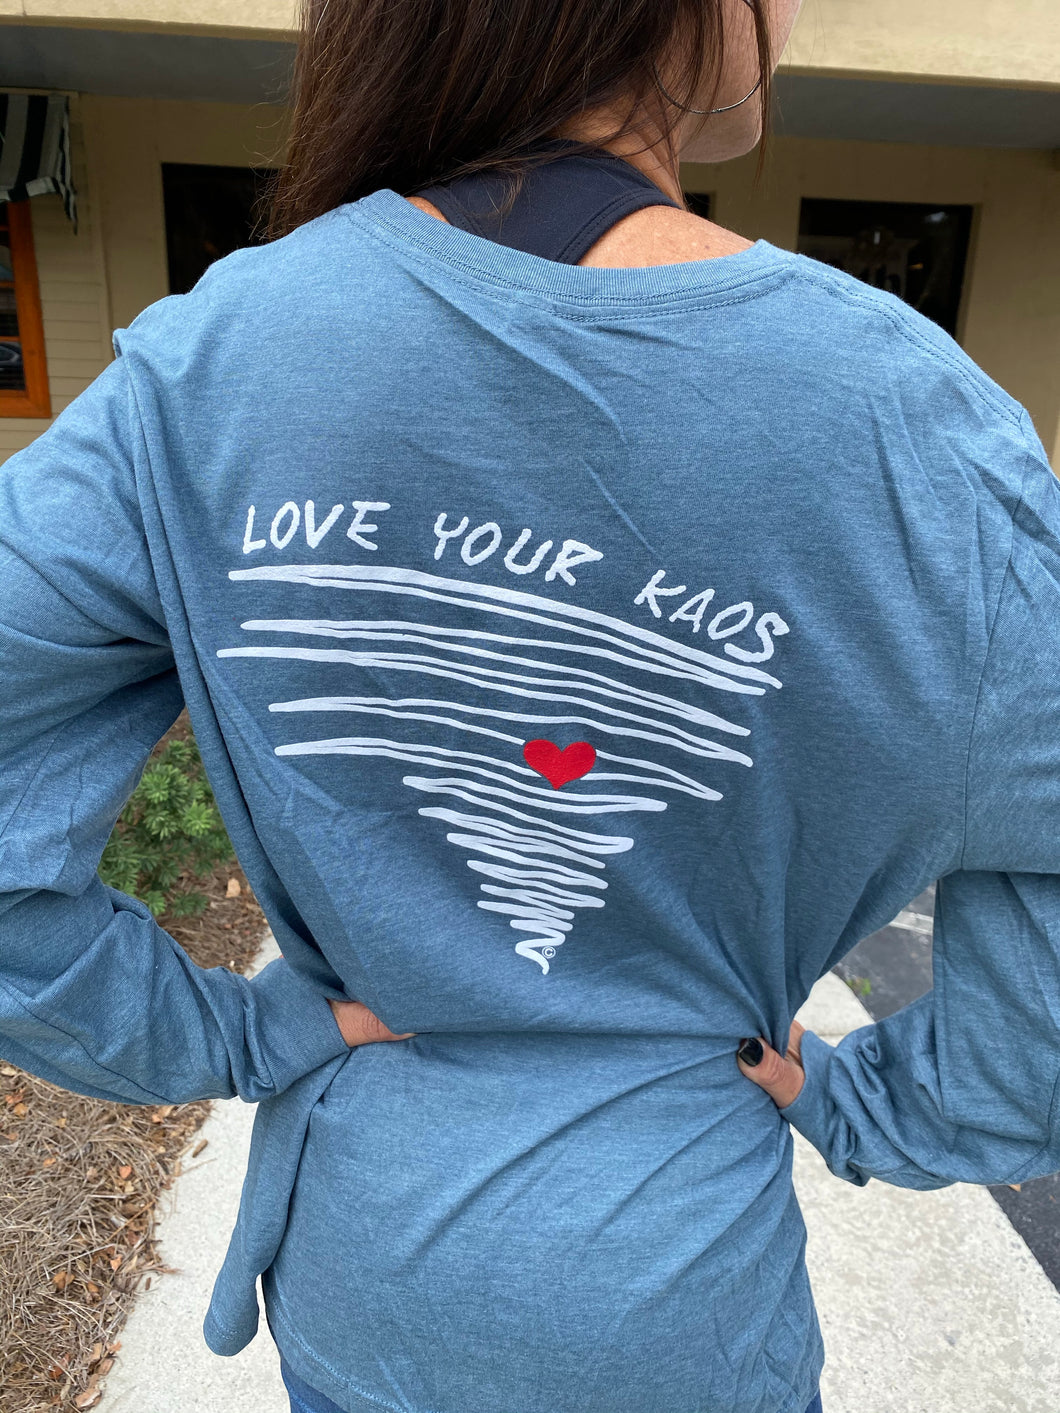 Long Sleeve 'Love Your Kaos' shirt